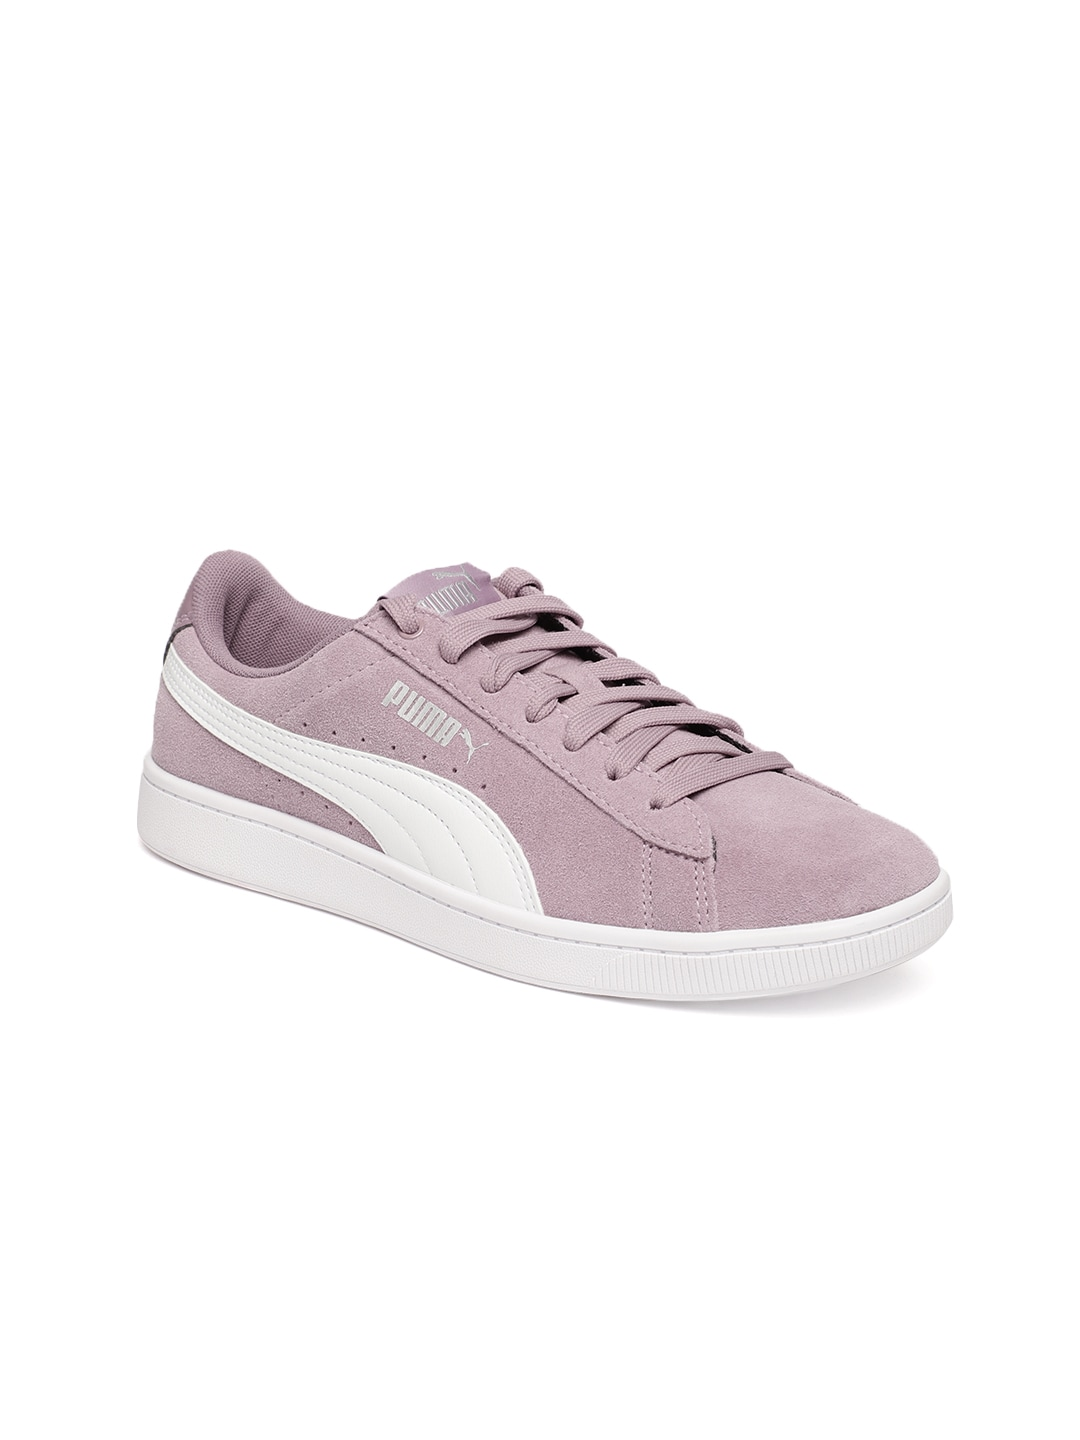 5e73492c368 Women Casual Shoes In Sole - Buy Women Casual Shoes In Sole online in India